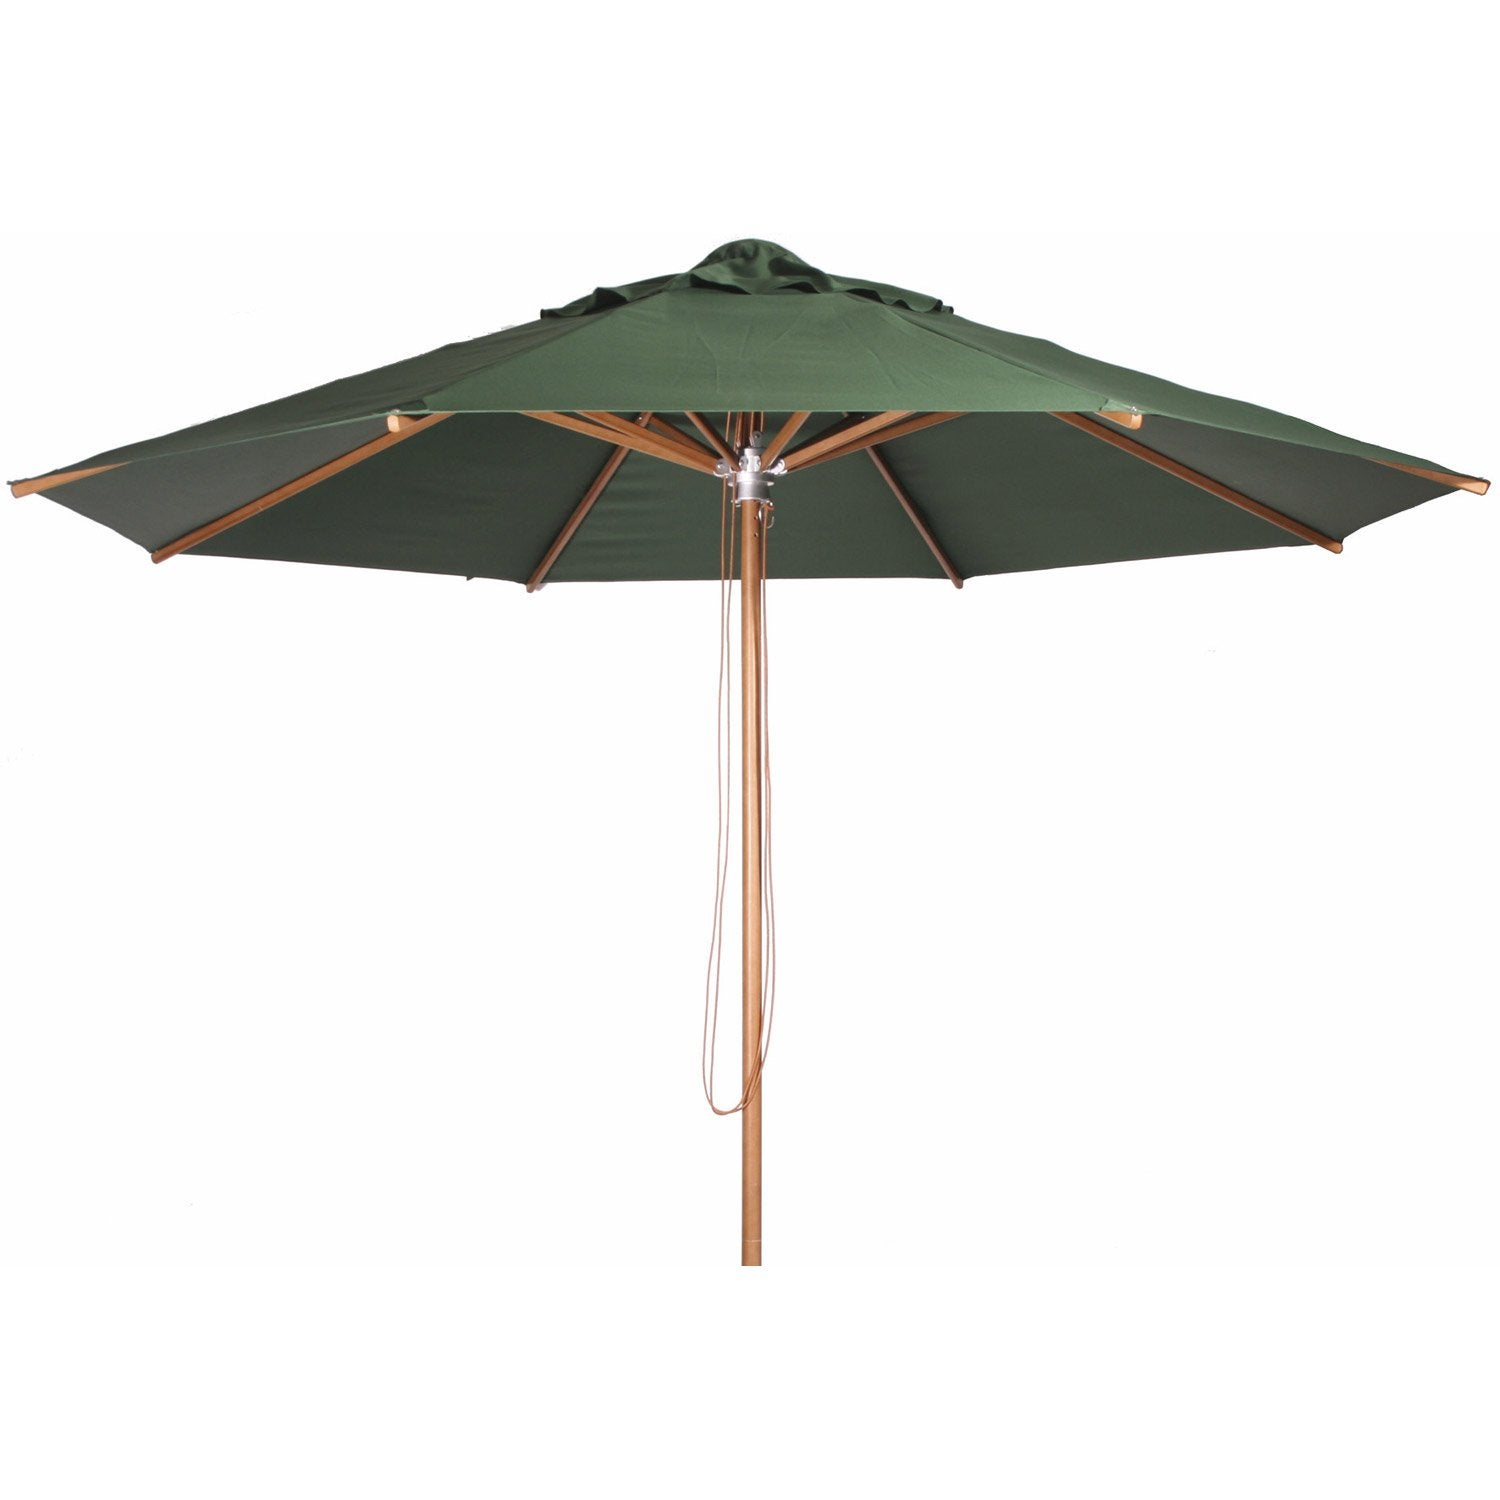 Parasol deporte inclinable falgos 3x3m cantilever outdoor - Parasol deporte inclinable leroy merlin ...